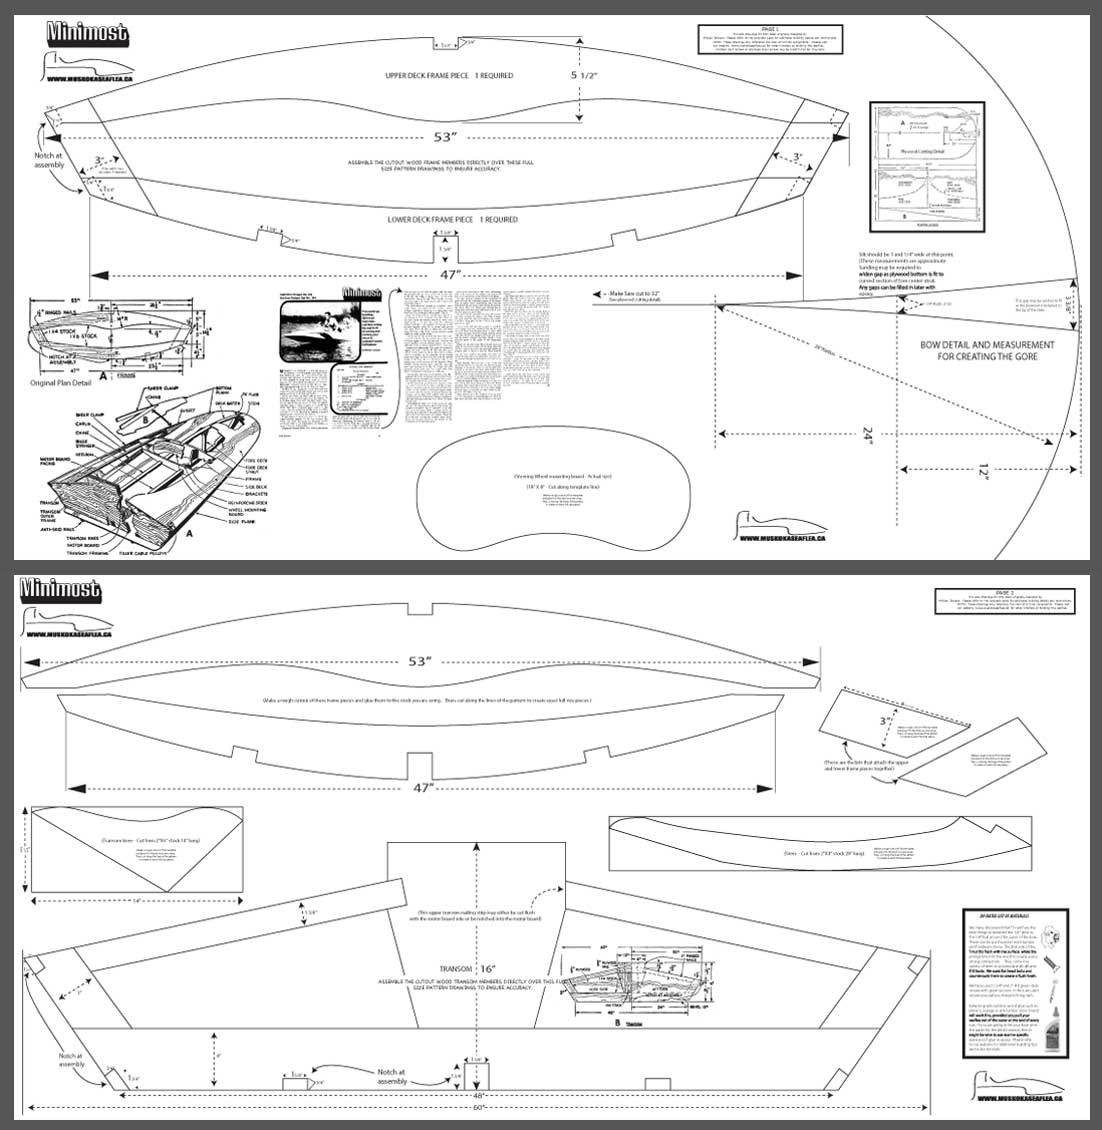 Full Size Plans For Sale